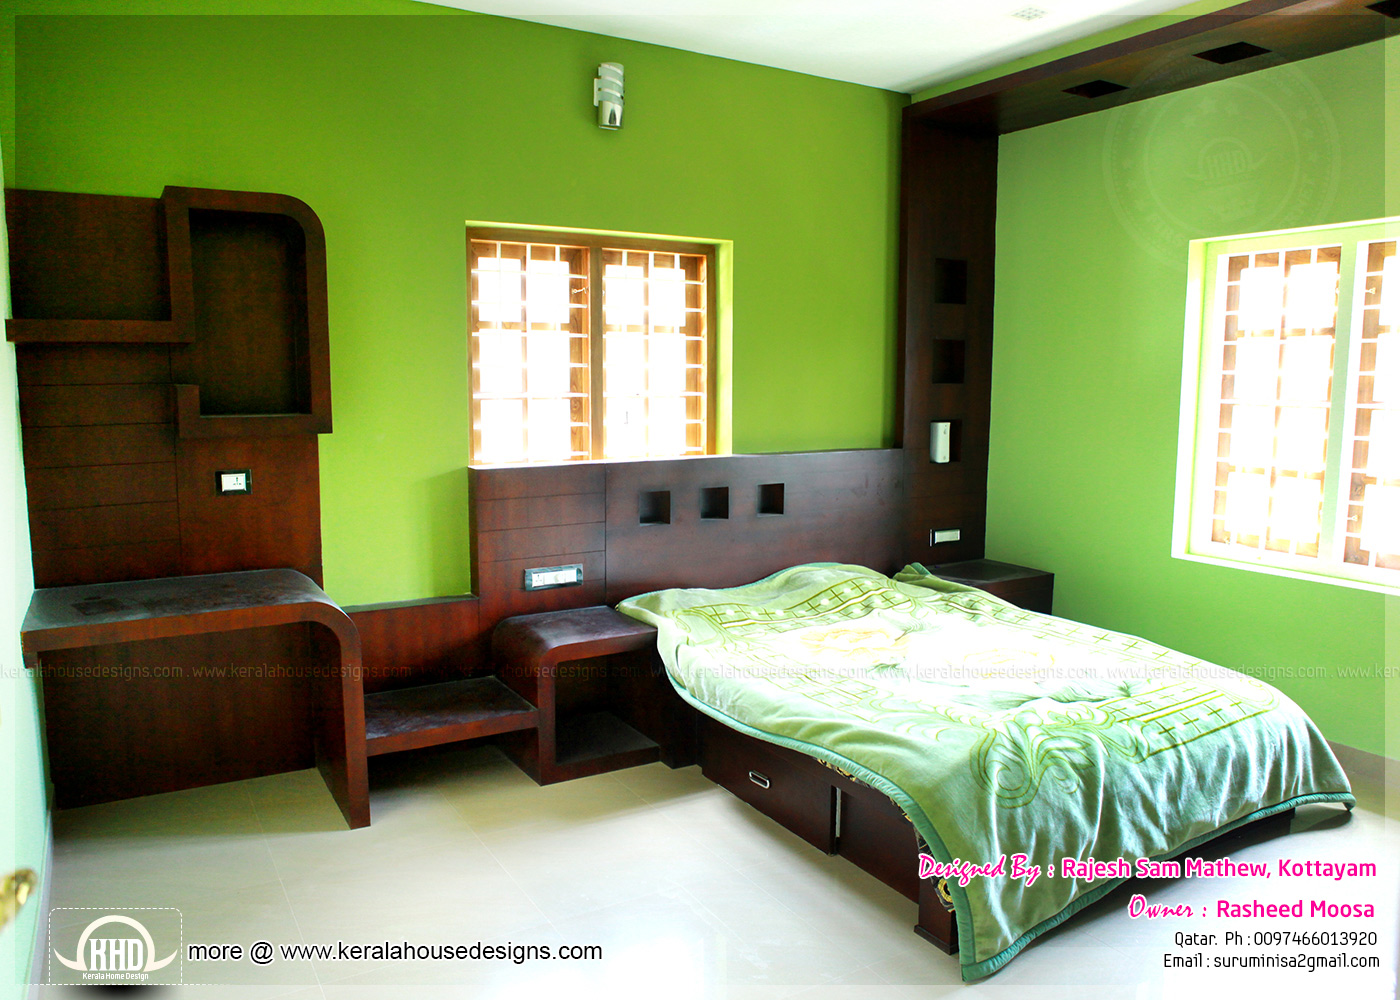 Kerala Interior Design With Photos